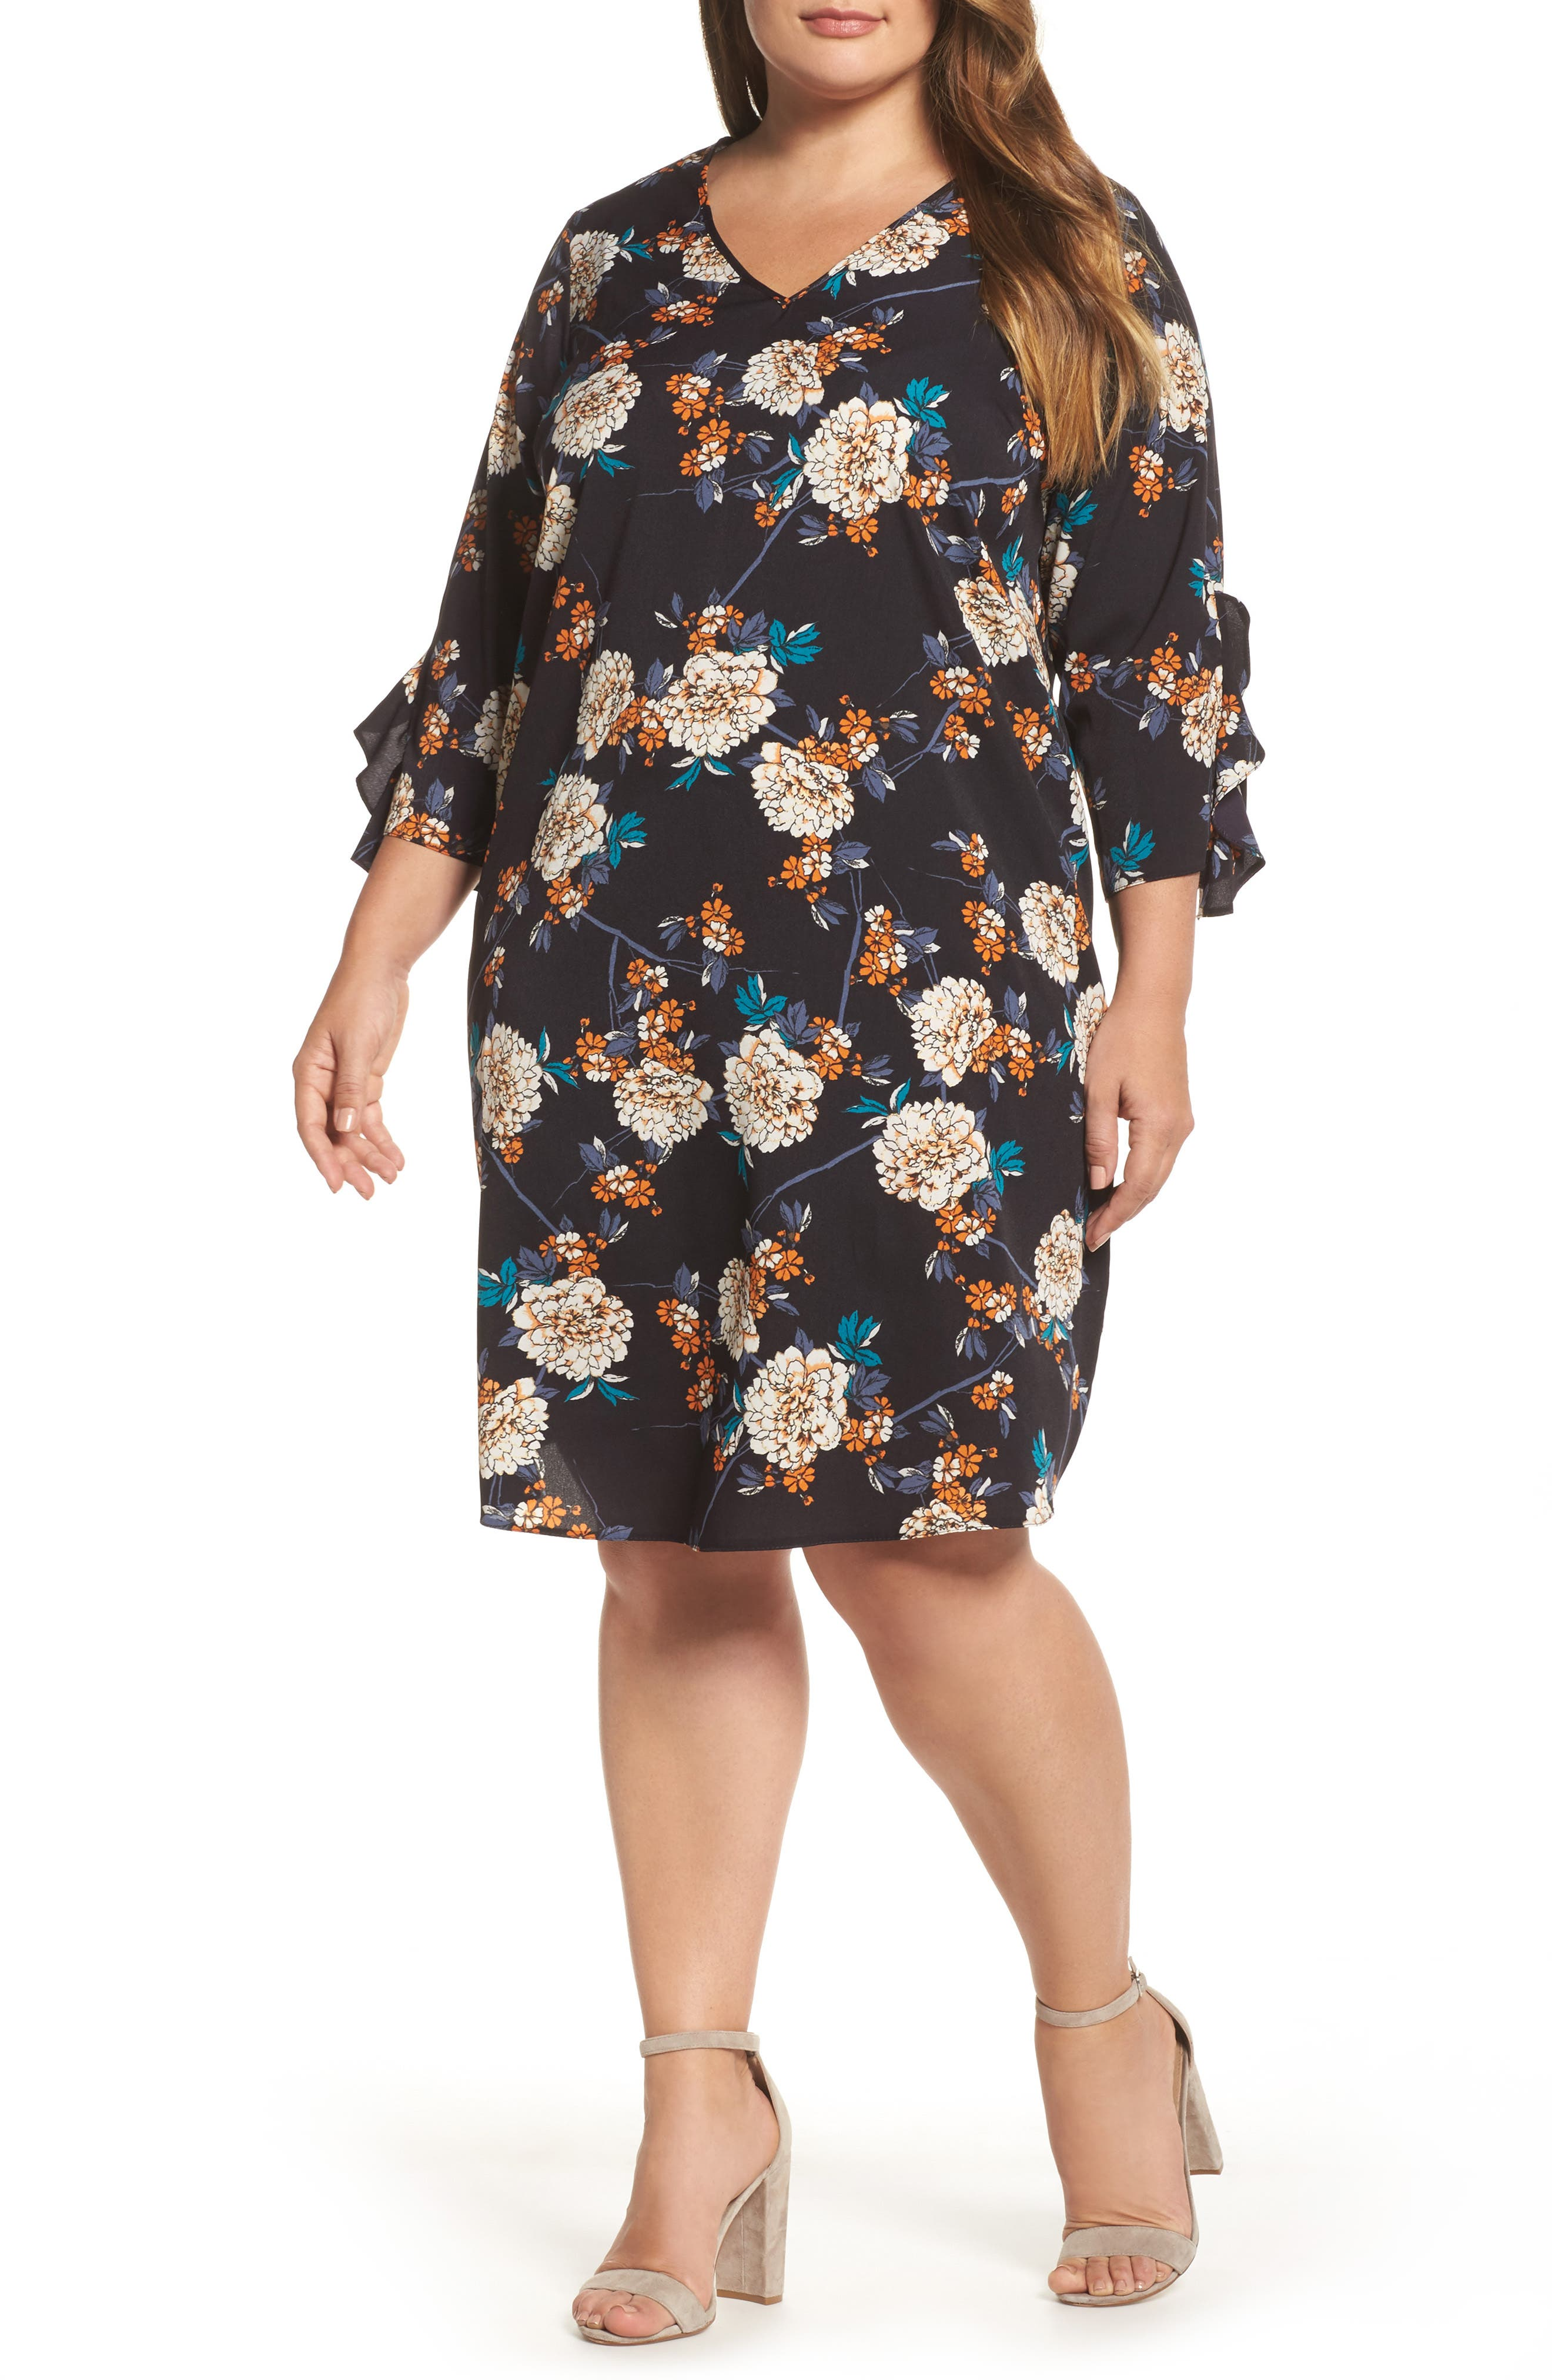 Alternate Image 1 Selected - Dorothy Perkins Floral Print Ruffle Sleeve Shift Dress (Plus Size)